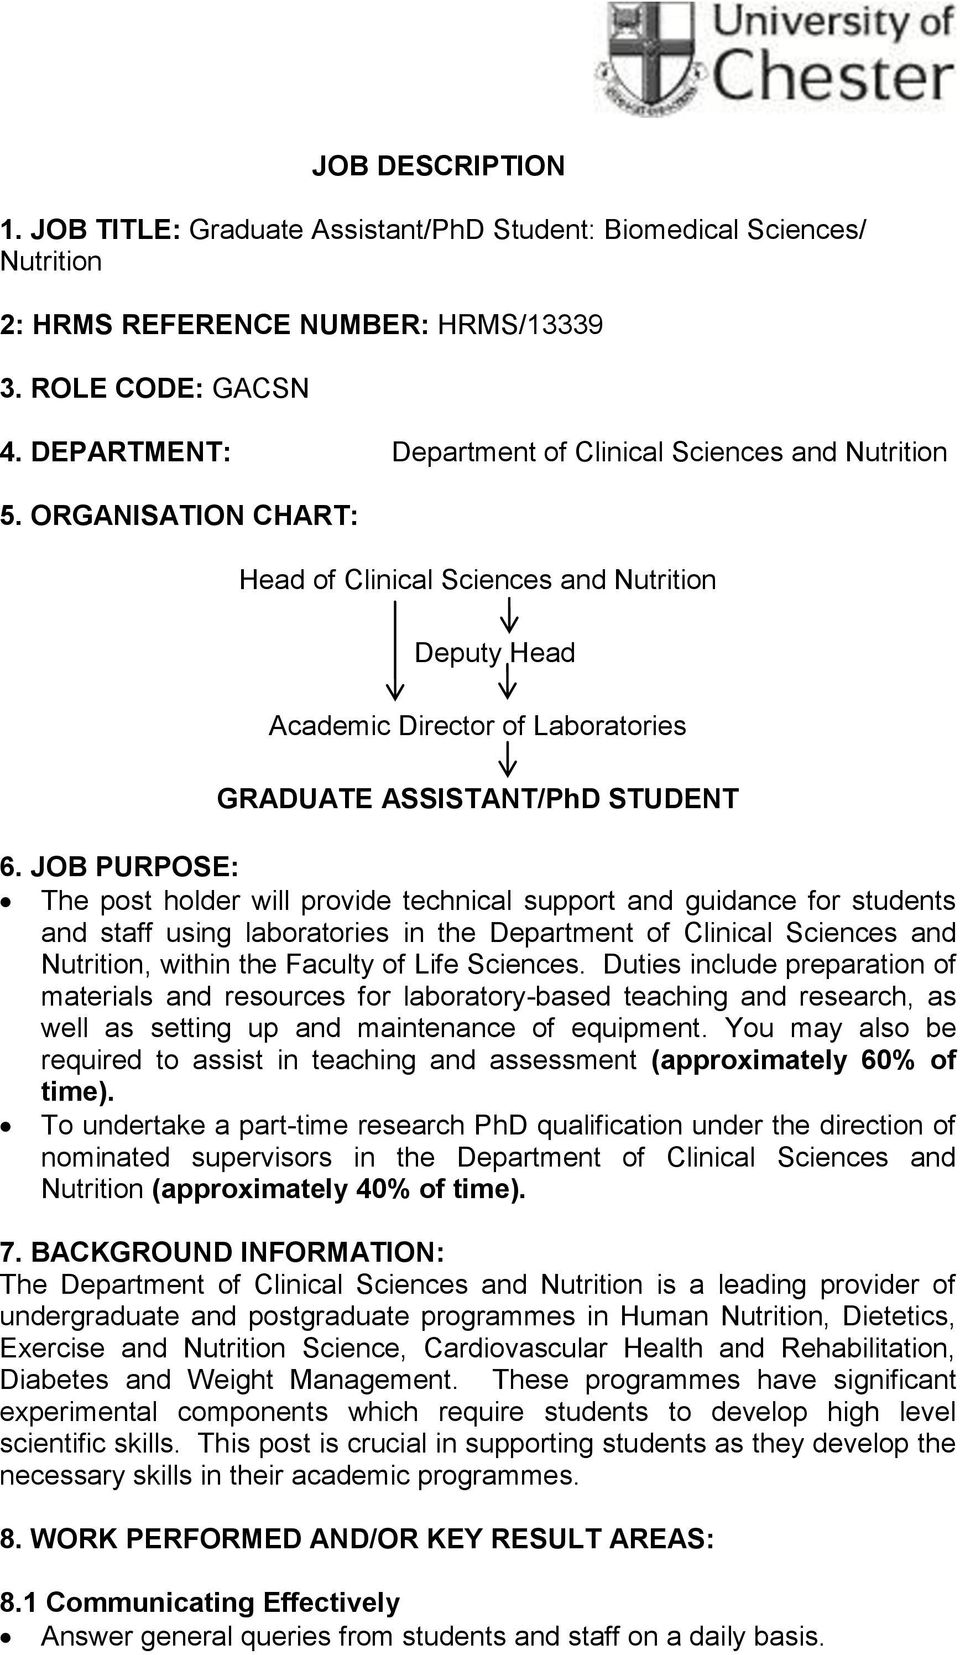 JOB PURPOSE: The post holder will provide technical support and guidance for students and staff using laboratories in the Department of Clinical Sciences and Nutrition, within the Faculty of Life